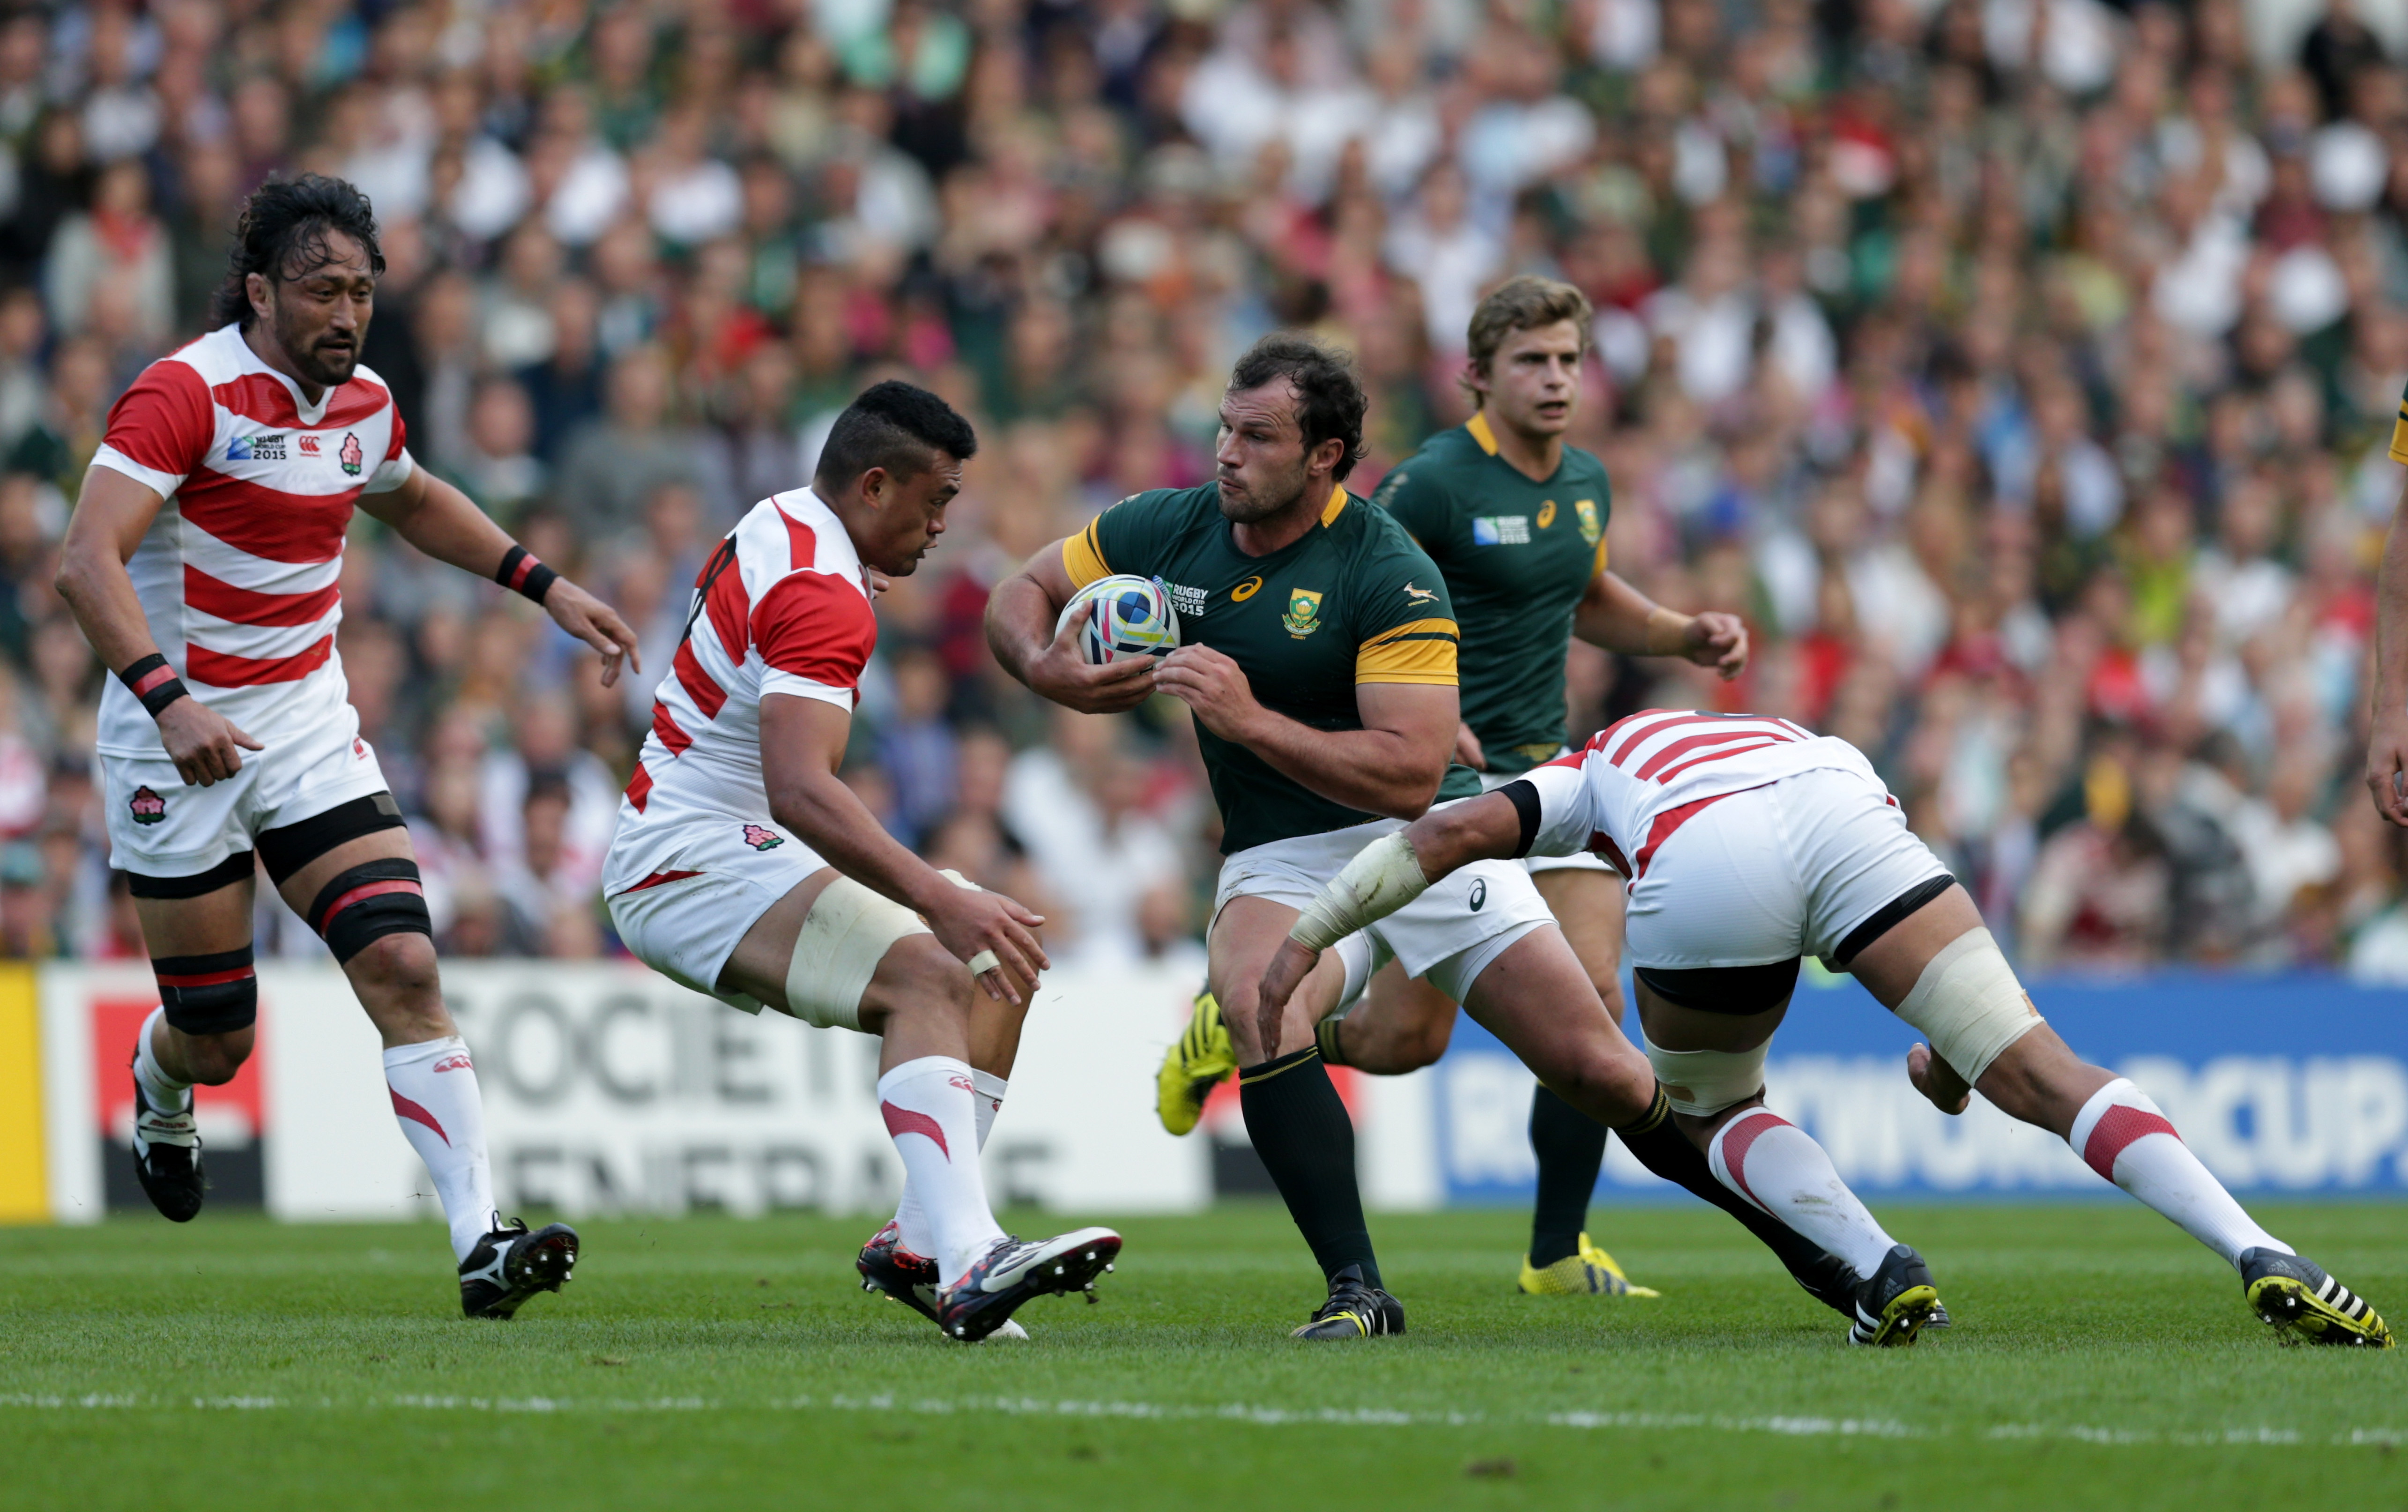 BRIGHTON, ENGLAND - SEPTEMBER 19: Bismarck Du Plessis of South Africa takes the ball on during the 2015 Rugby World Cup Pool B match between South Africa and Japan at Brighton Community Stadium on September 19, 2015 in Brighton, United Kingdom. (Photo by Steve Bardens - World Rugby/World Rugby via Getty Images)